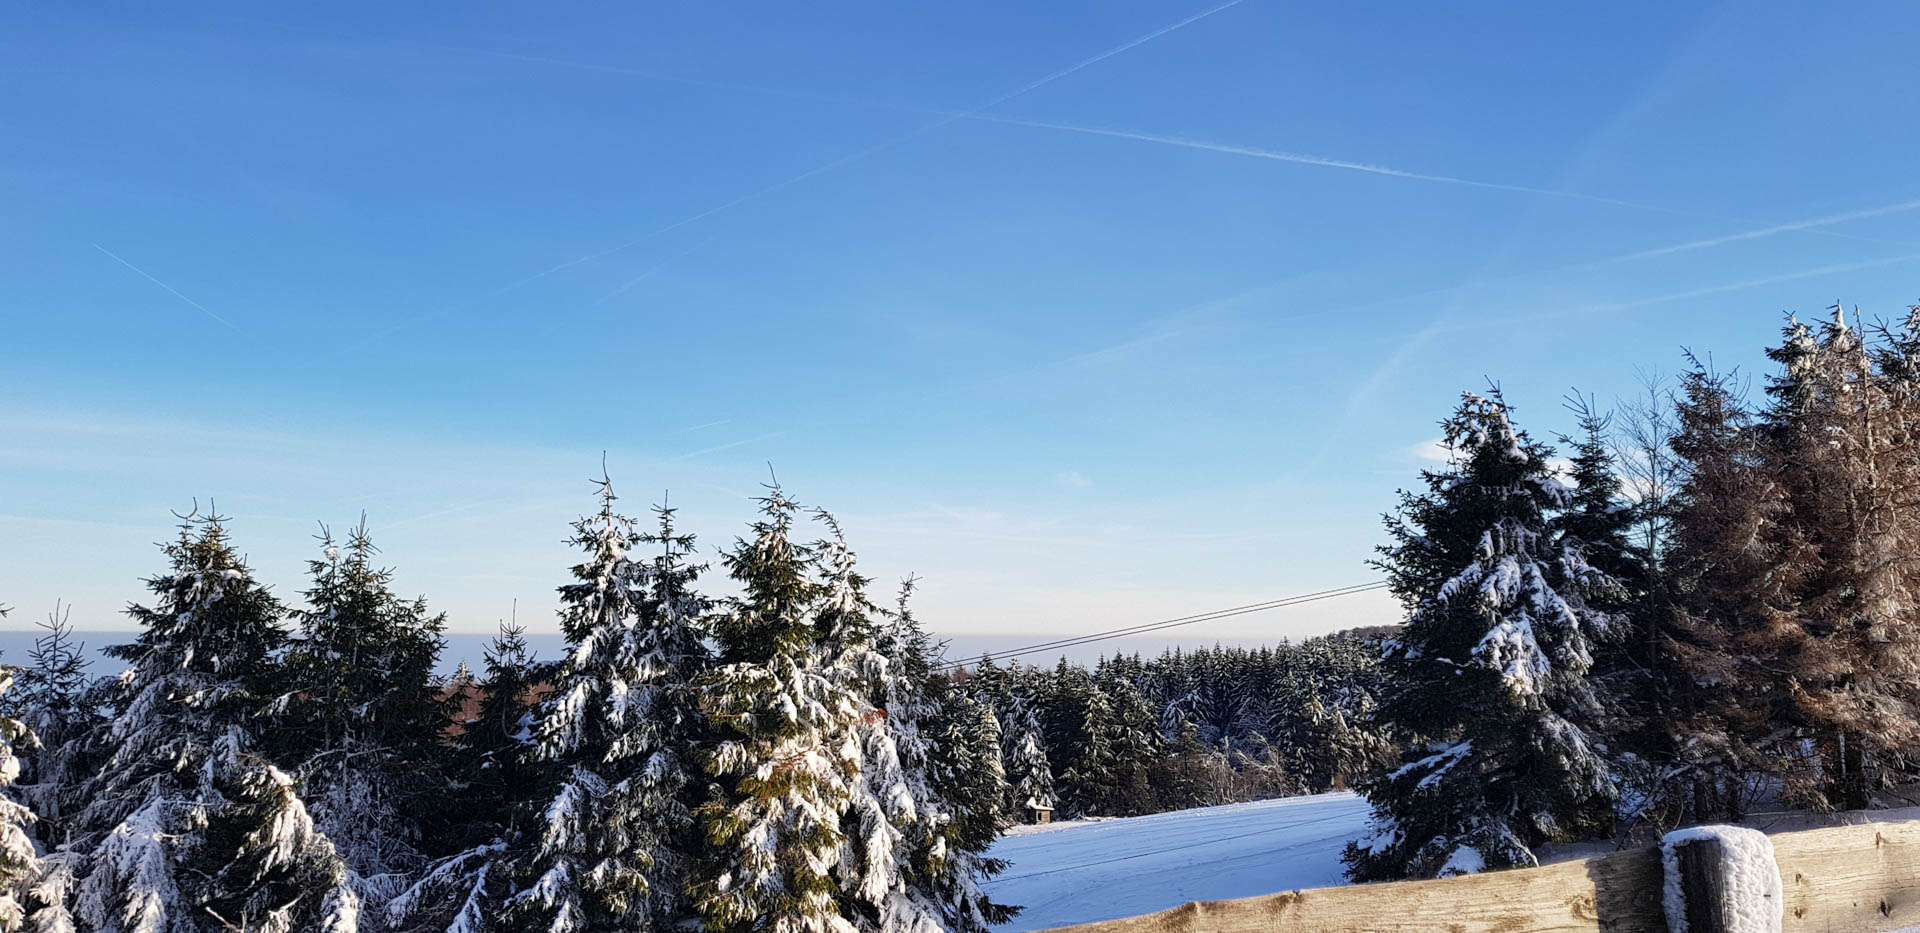 Feuerberg_Winter_2019-02-06-177